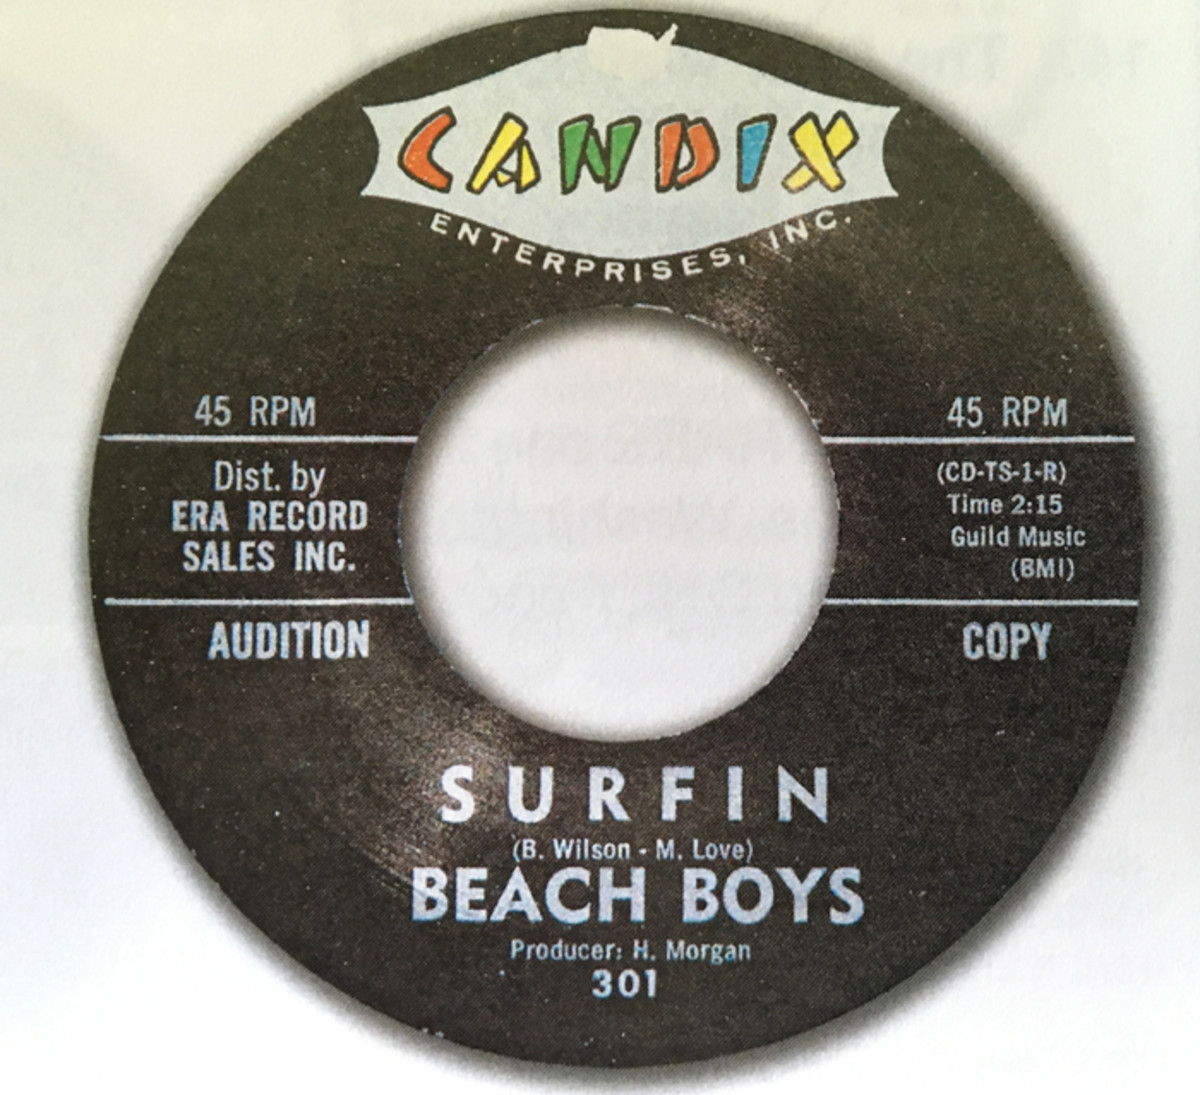 """Beach Boys' 45 of """"Surfin/Luau"""" on Candix (301) in mint condtion. Image courtesy of Tefteller's Rarest Records."""